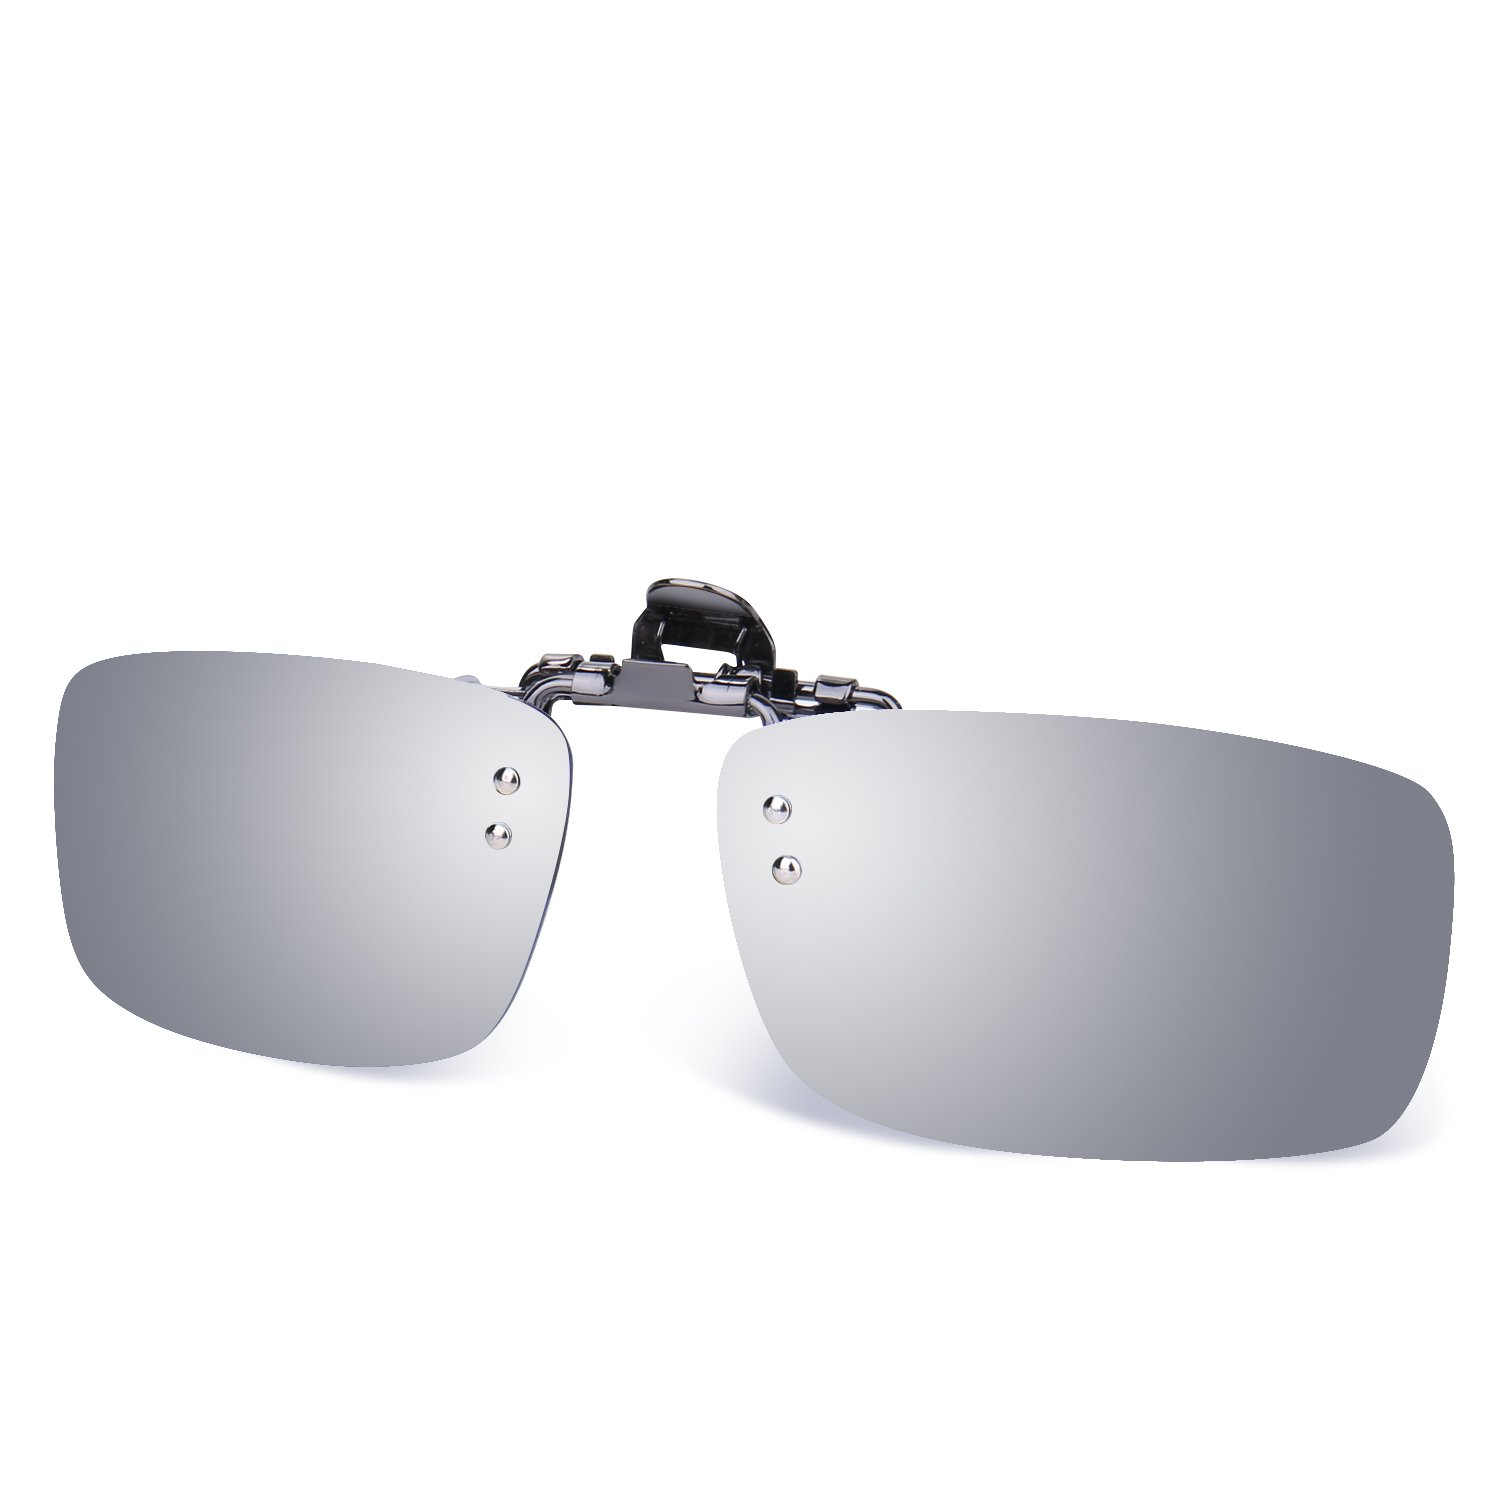 f7307fc241f Besgoods Polarized Clip-on Flip up Metal Clip Sunglasses Lenses Glasses  Unbreakable Driving Fishing Outdoor Sport New-Royal Blue Mirror Silver  Mirror ...